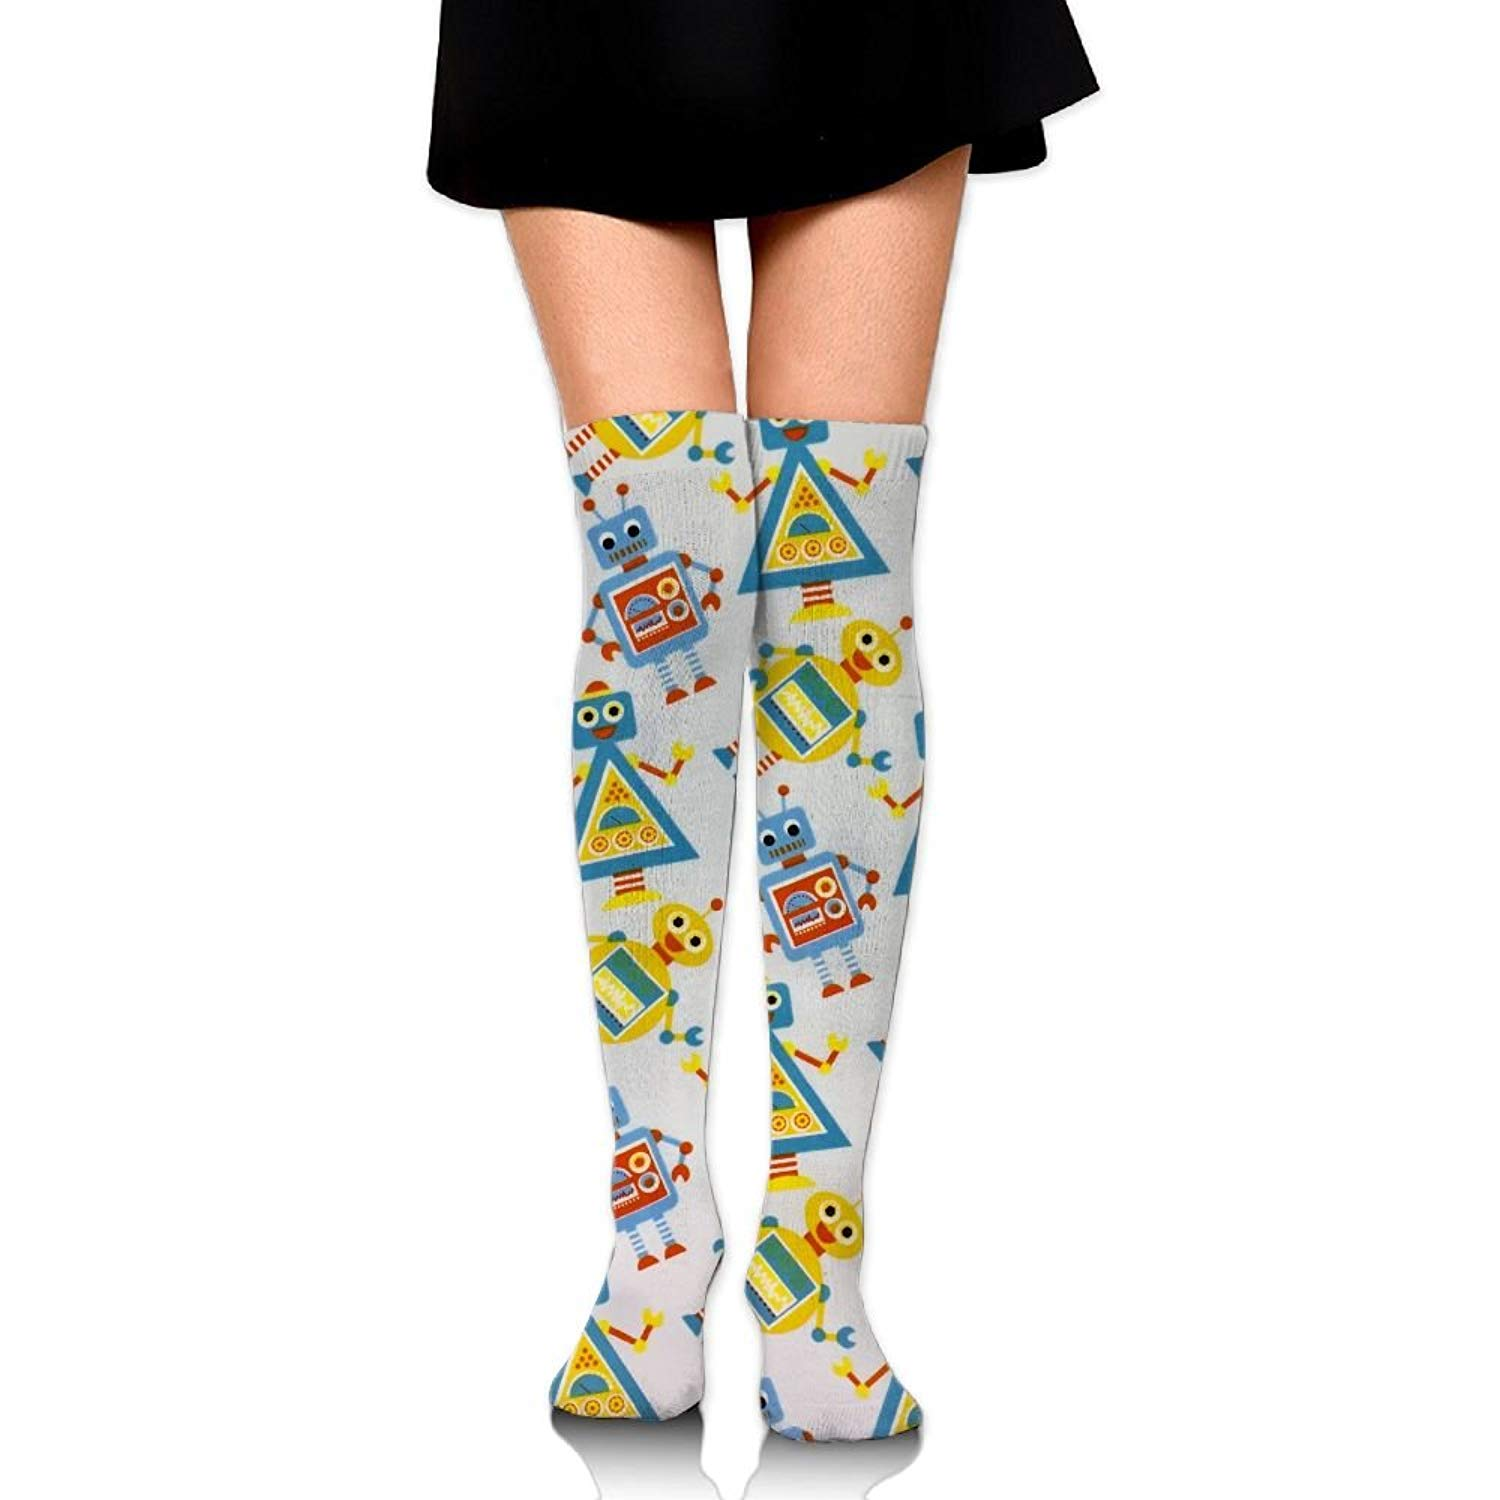 Zaqxsw Color Robot Women Fashion Thigh High Socks Long Socks For Teen Girls